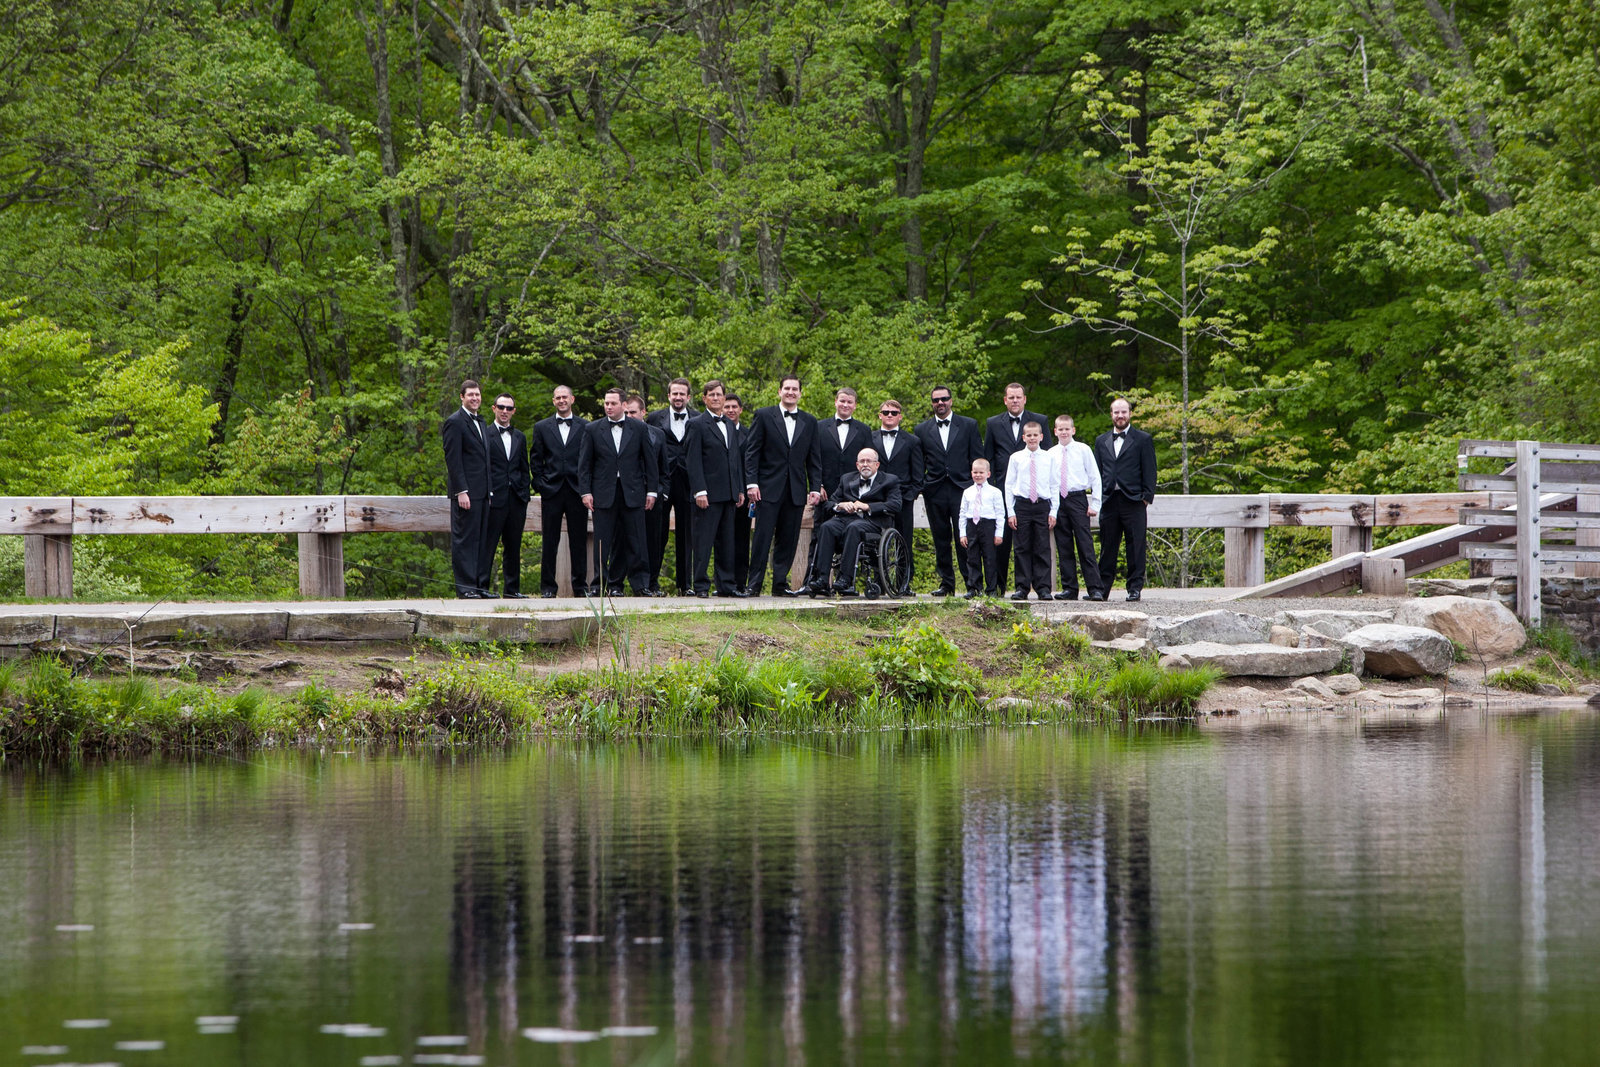 groomsmen at lake edge